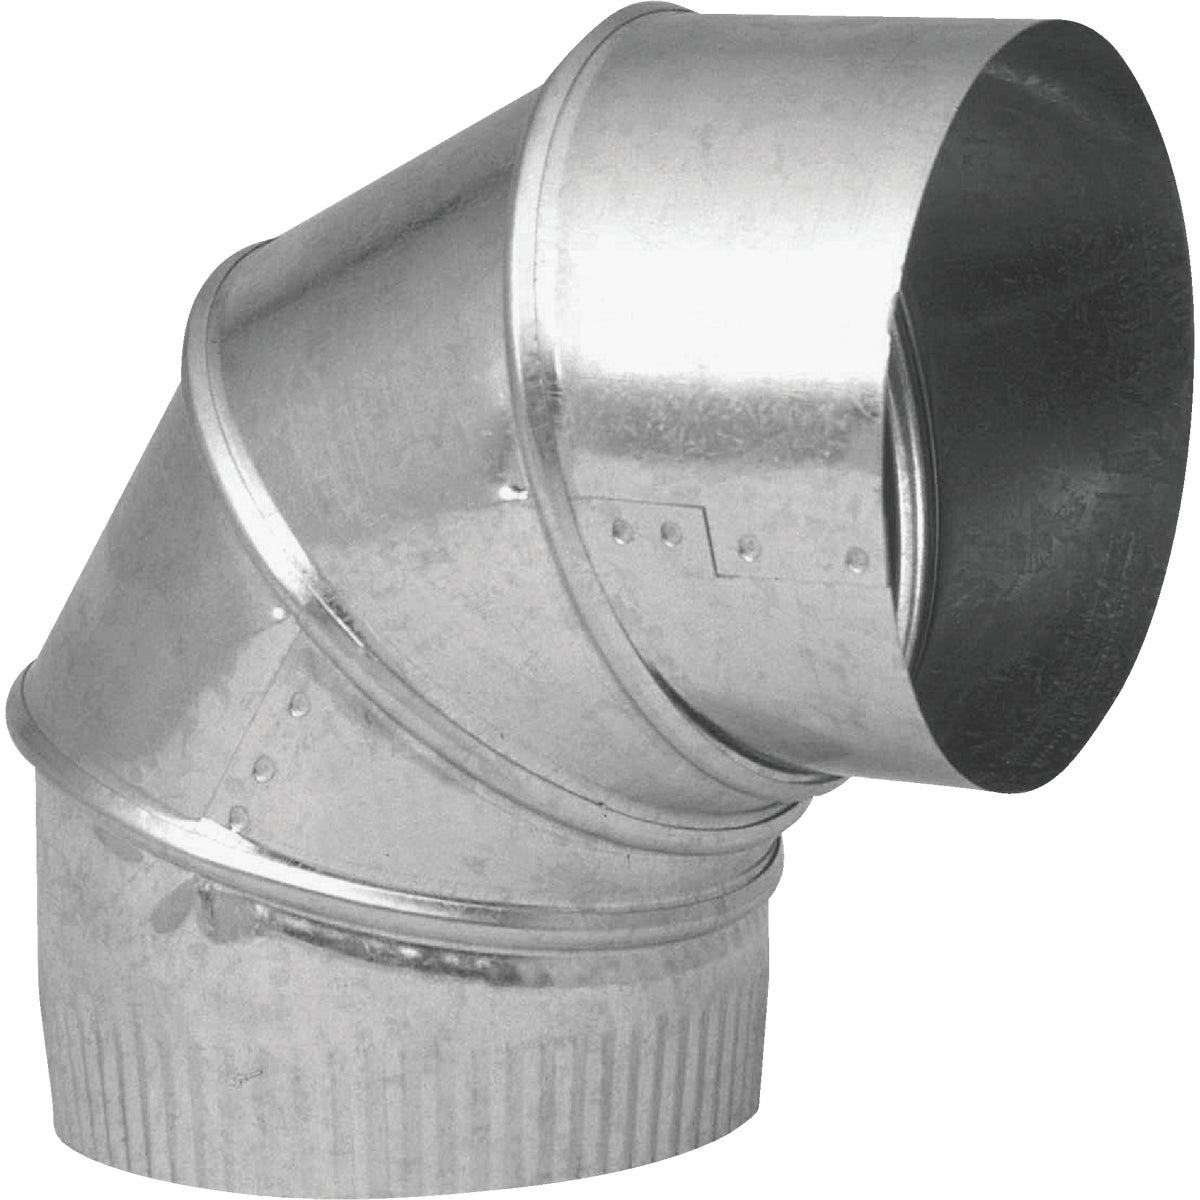 "6"" 28GA GALV ADJ ELBOW - GV0295-C by Imperial Mfg Group"